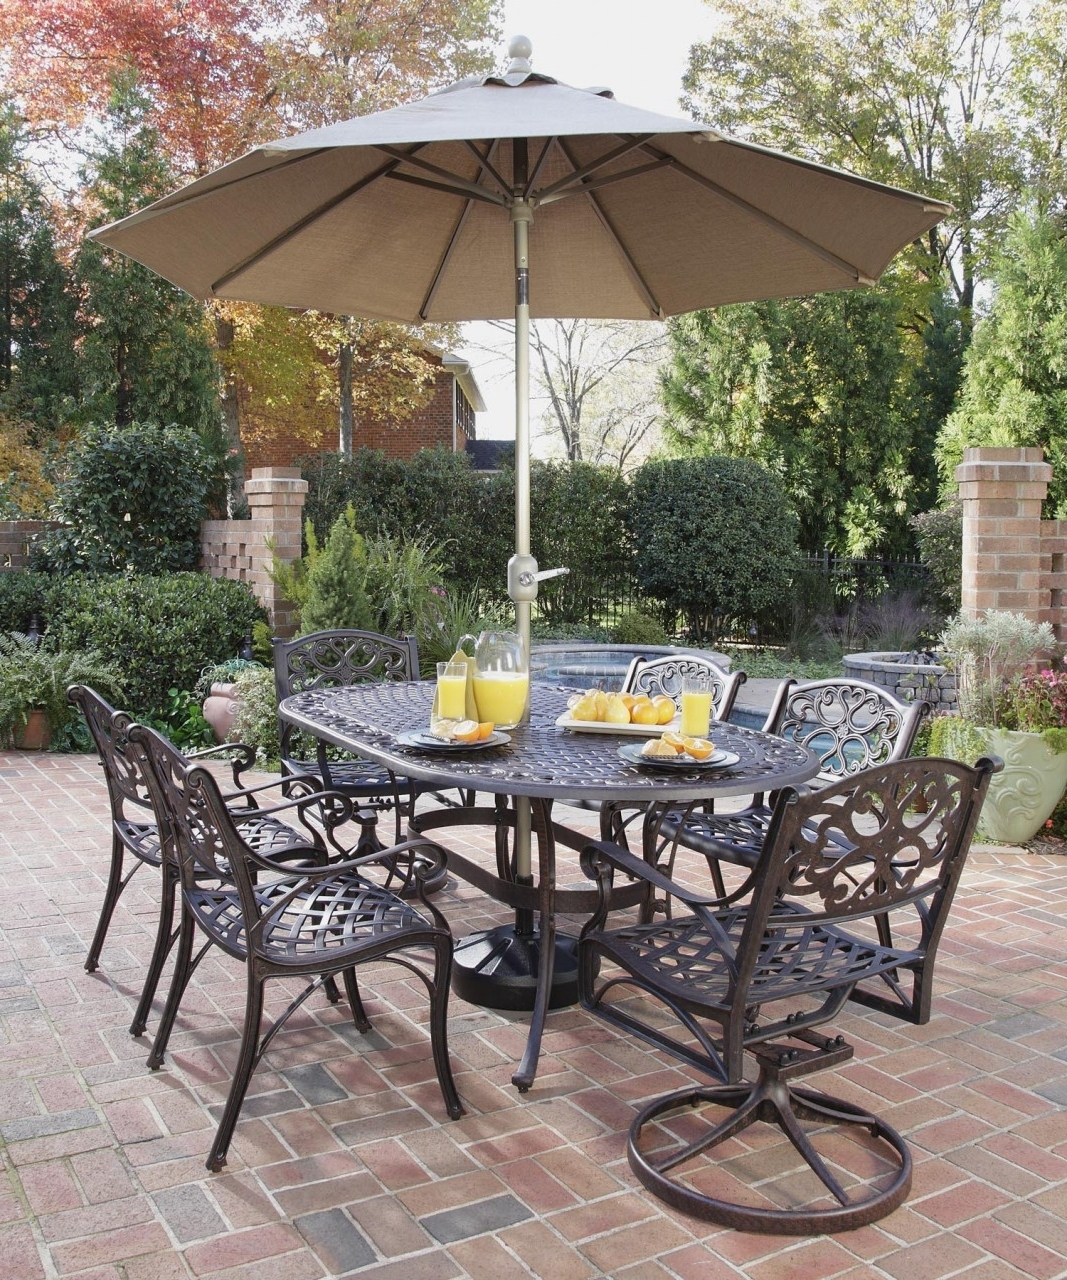 Sams Club Patio Umbrellas With Regard To Famous Outdoor Design: Patio Umbrella And Sams Club Patio Furniture With (View 4 of 20)